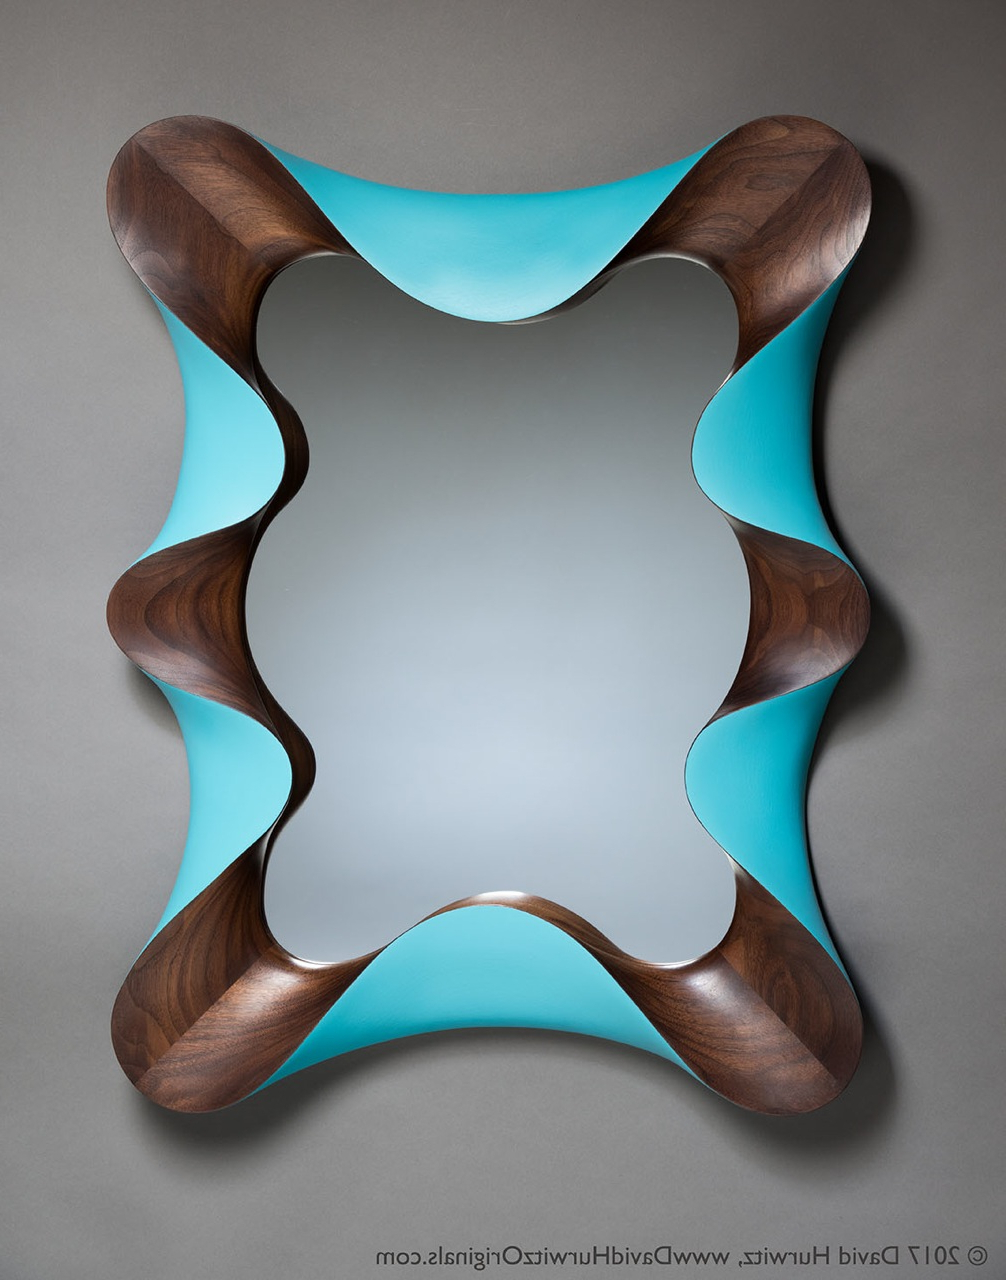 Turquoise Wall Mirrors Within Best And Newest Modern Wall Mirror, Walnut, Turquoise, Hand Painted, Carved Wood (View 17 of 20)